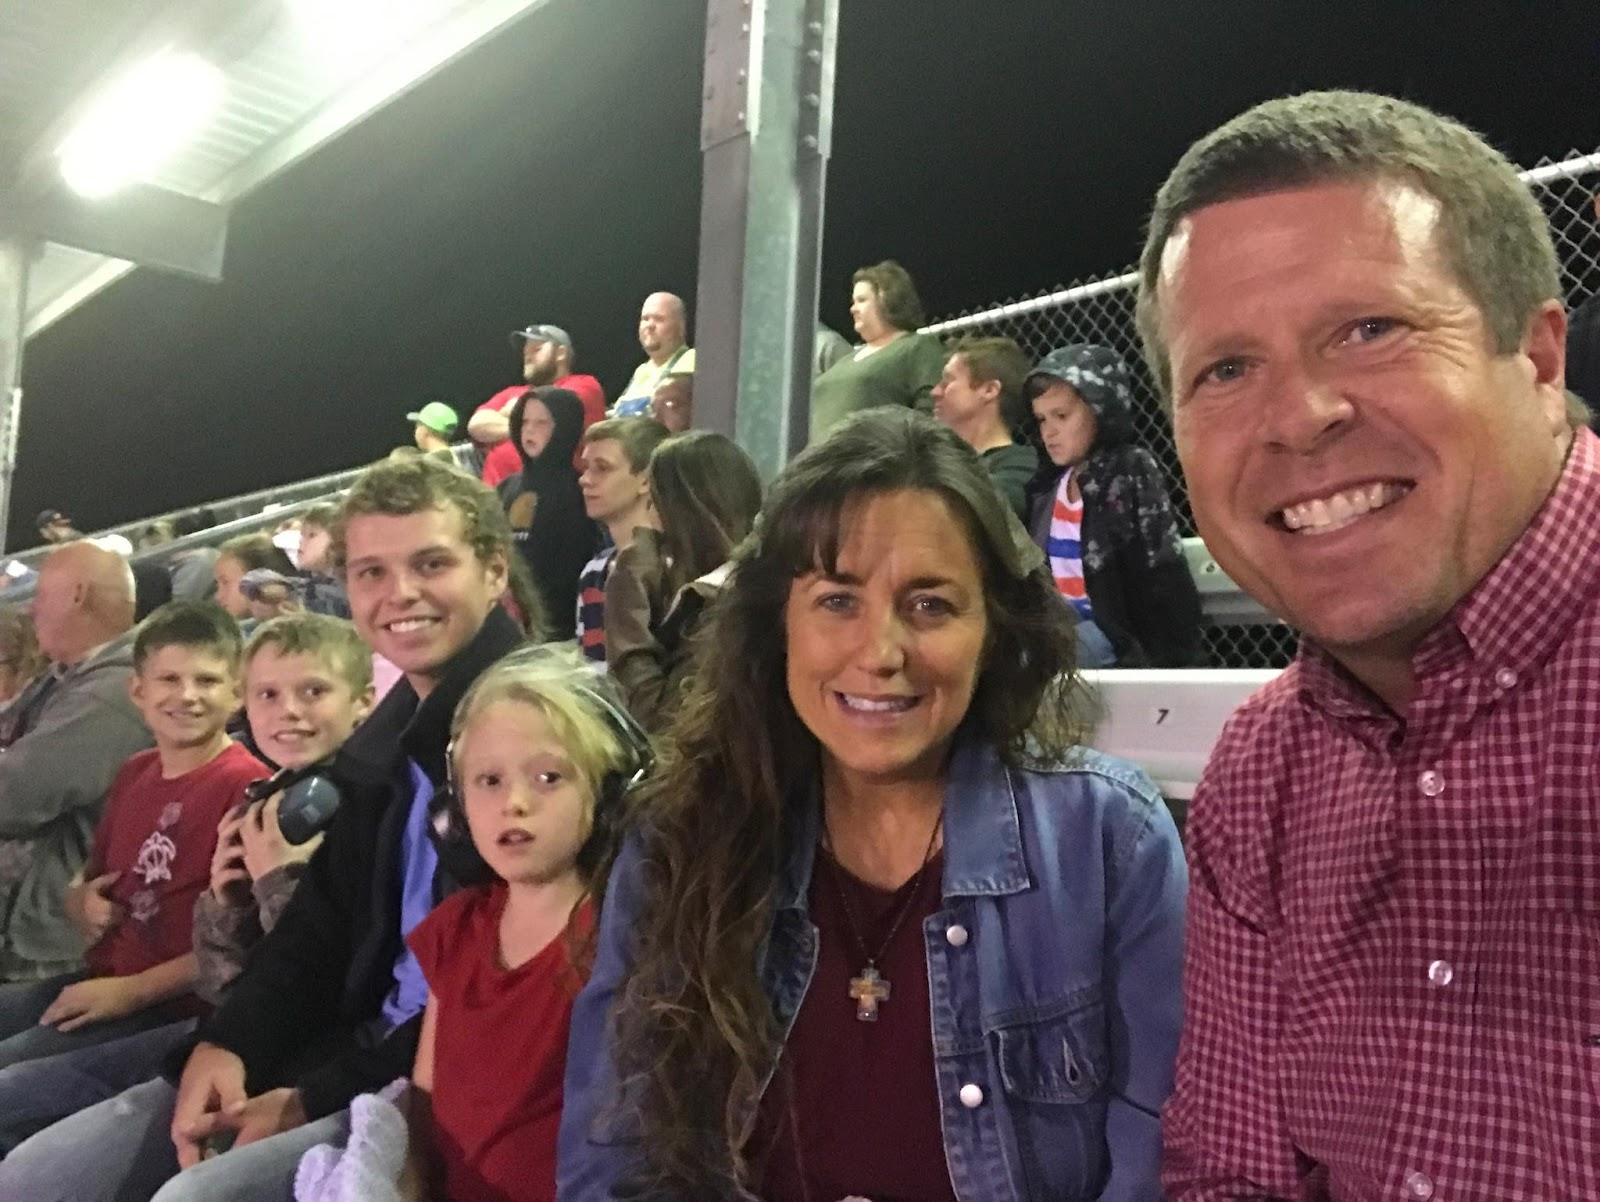 duggars dating 2017 The family has nineteen children josh and anna got married in september 2008 and have five children derick and jill got married in june 2014 and have two children.